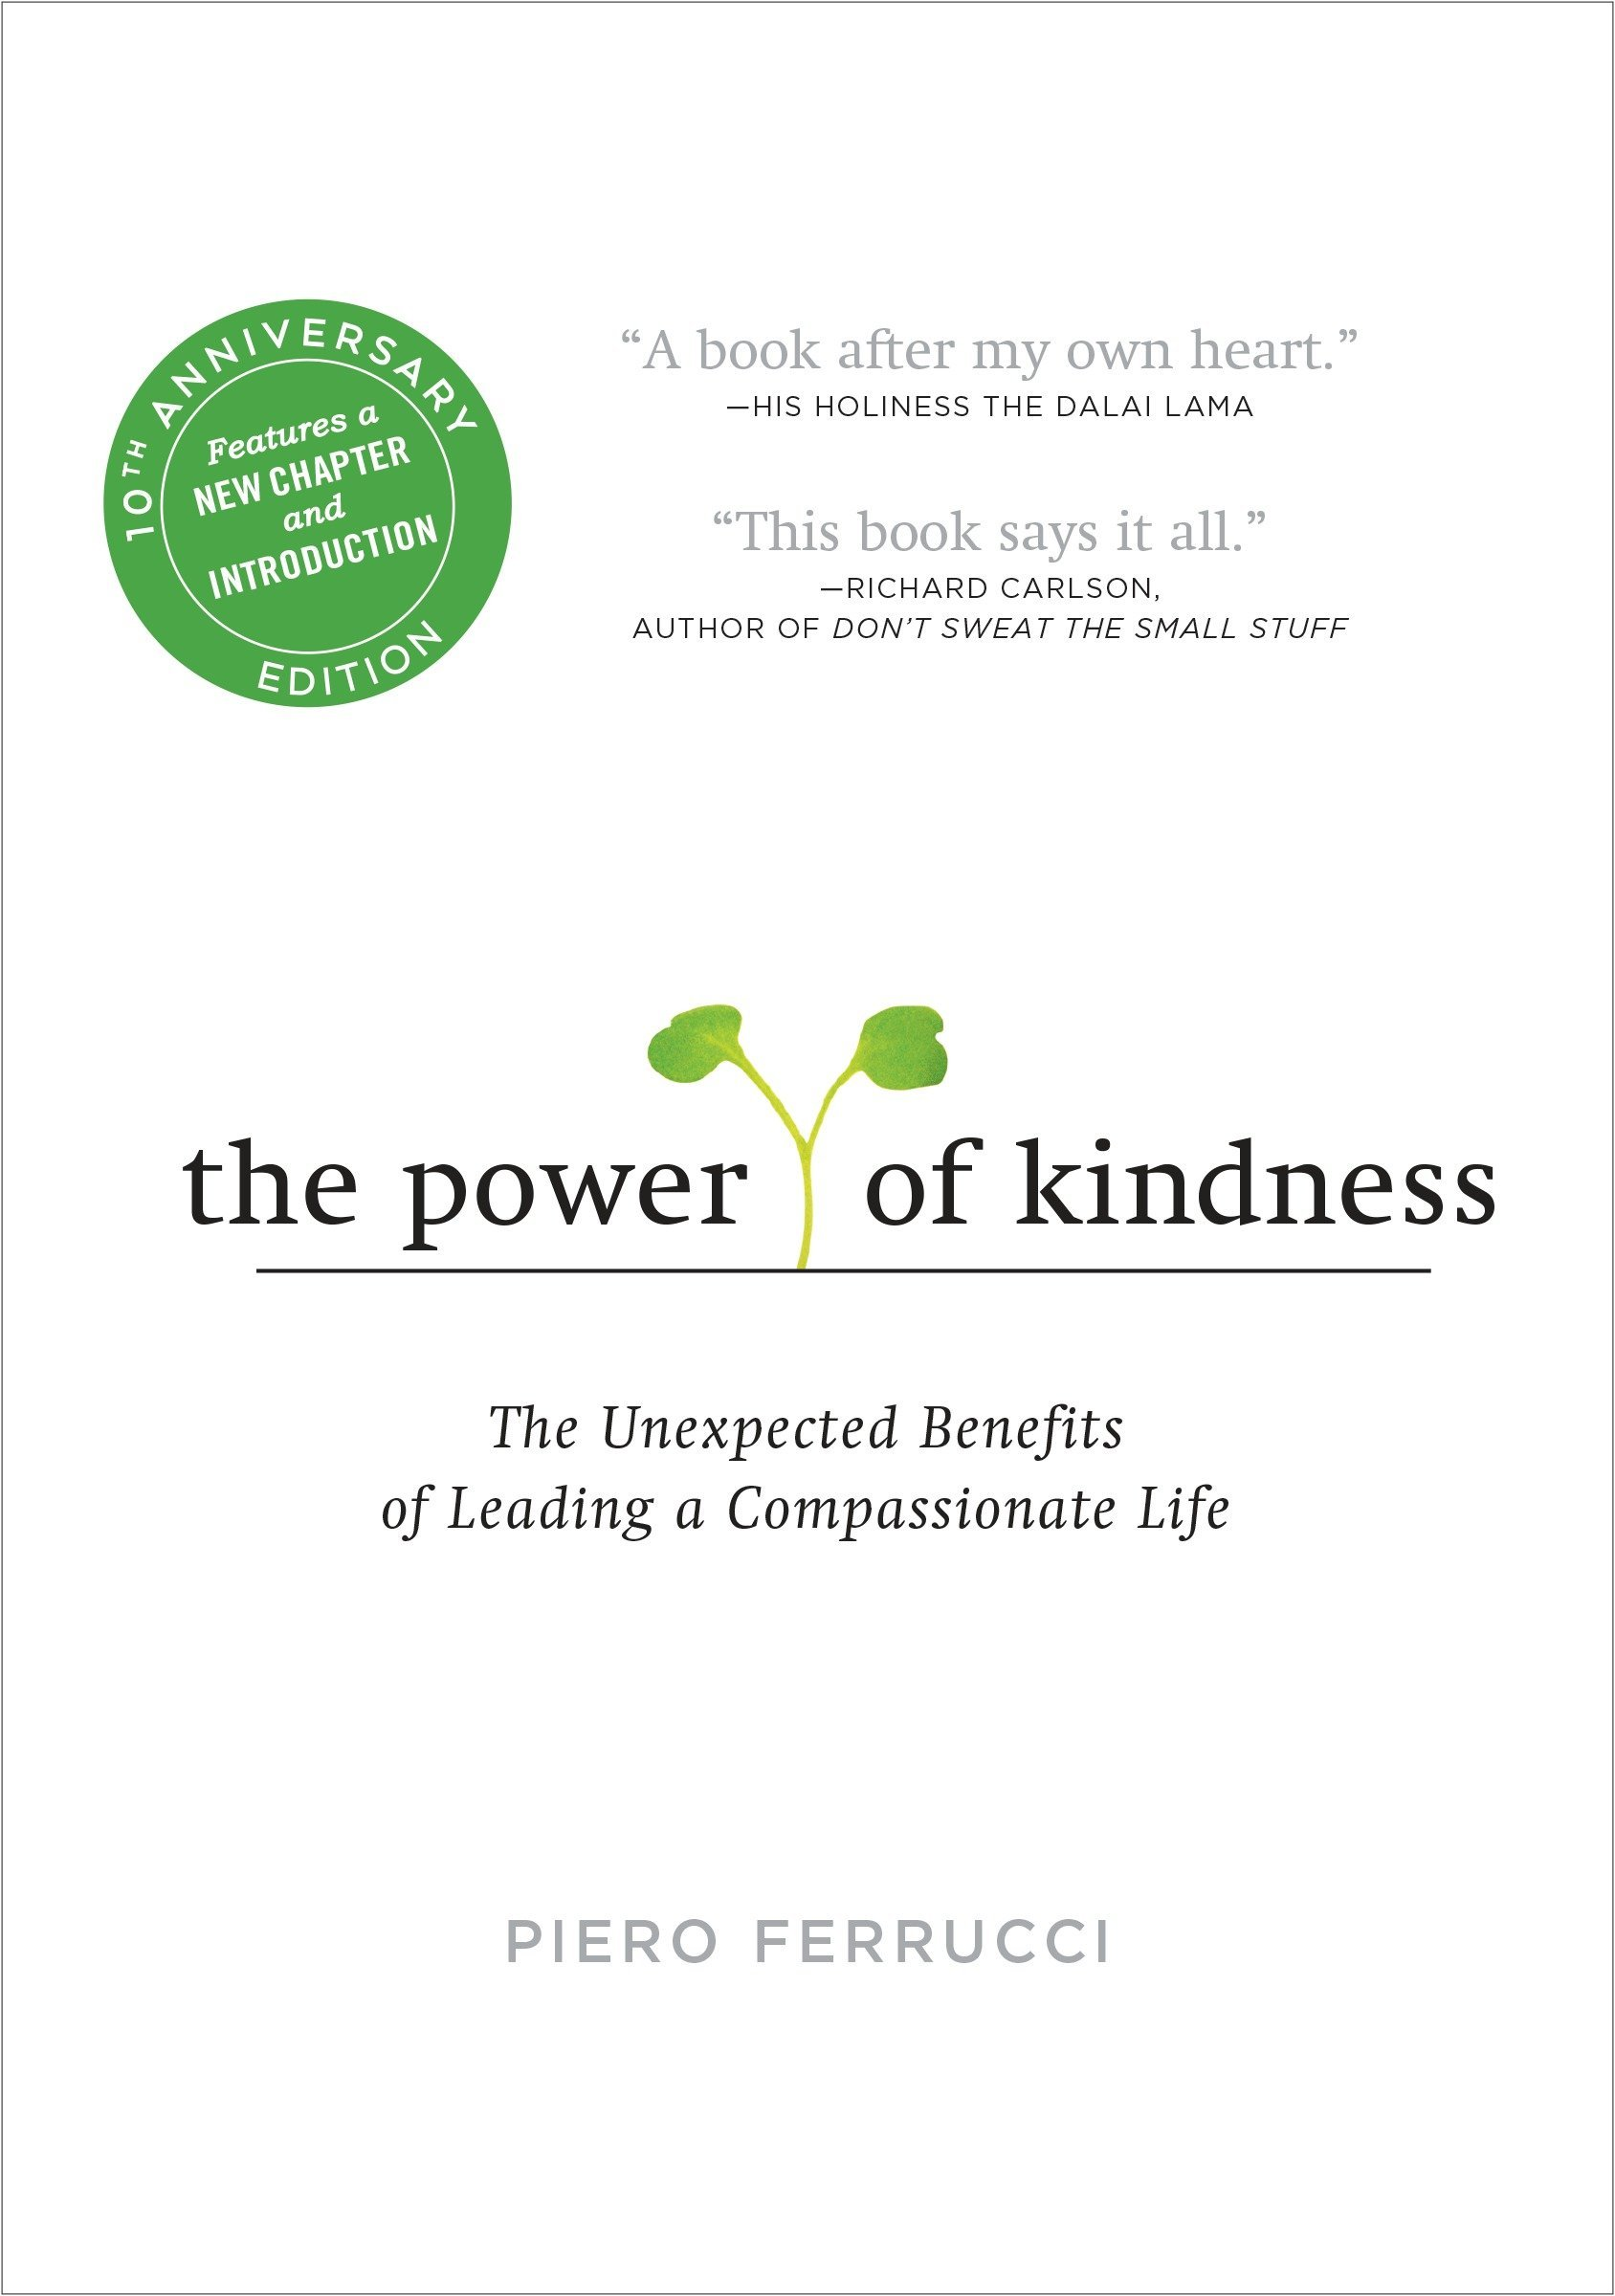 The Power of Kindness: The Unexpected Benefits of Leading a Compassionate Life–Tenth Anniversary Edition